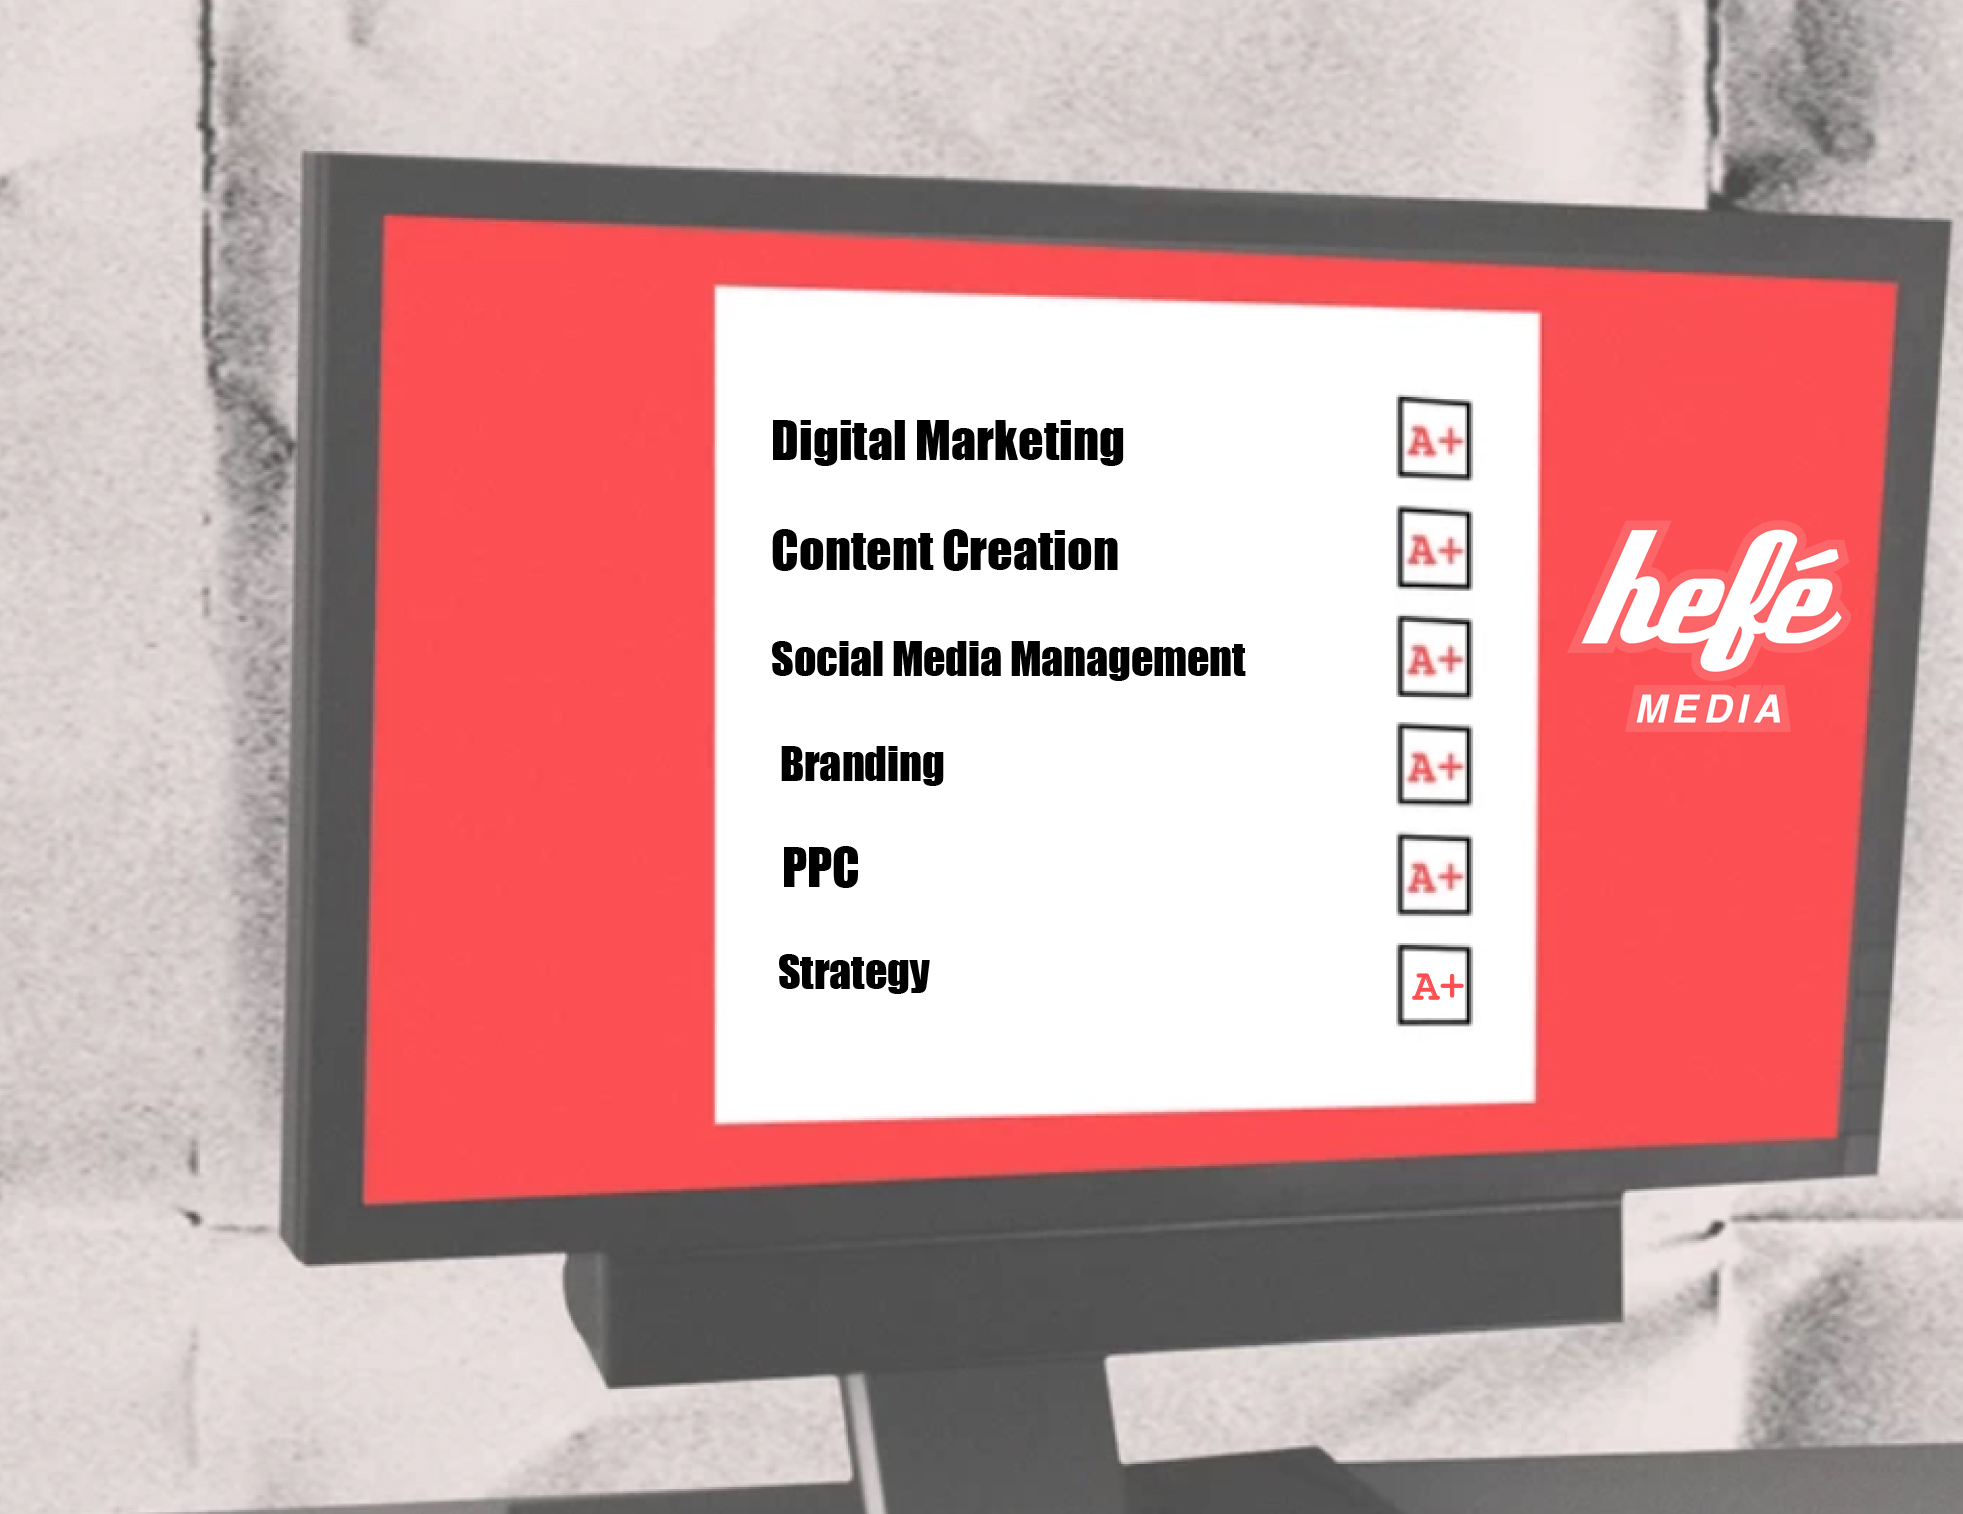 Media Production Company - We specialize in creating impactful content for social media and produce distinct branding that live long with the targeted consumer.